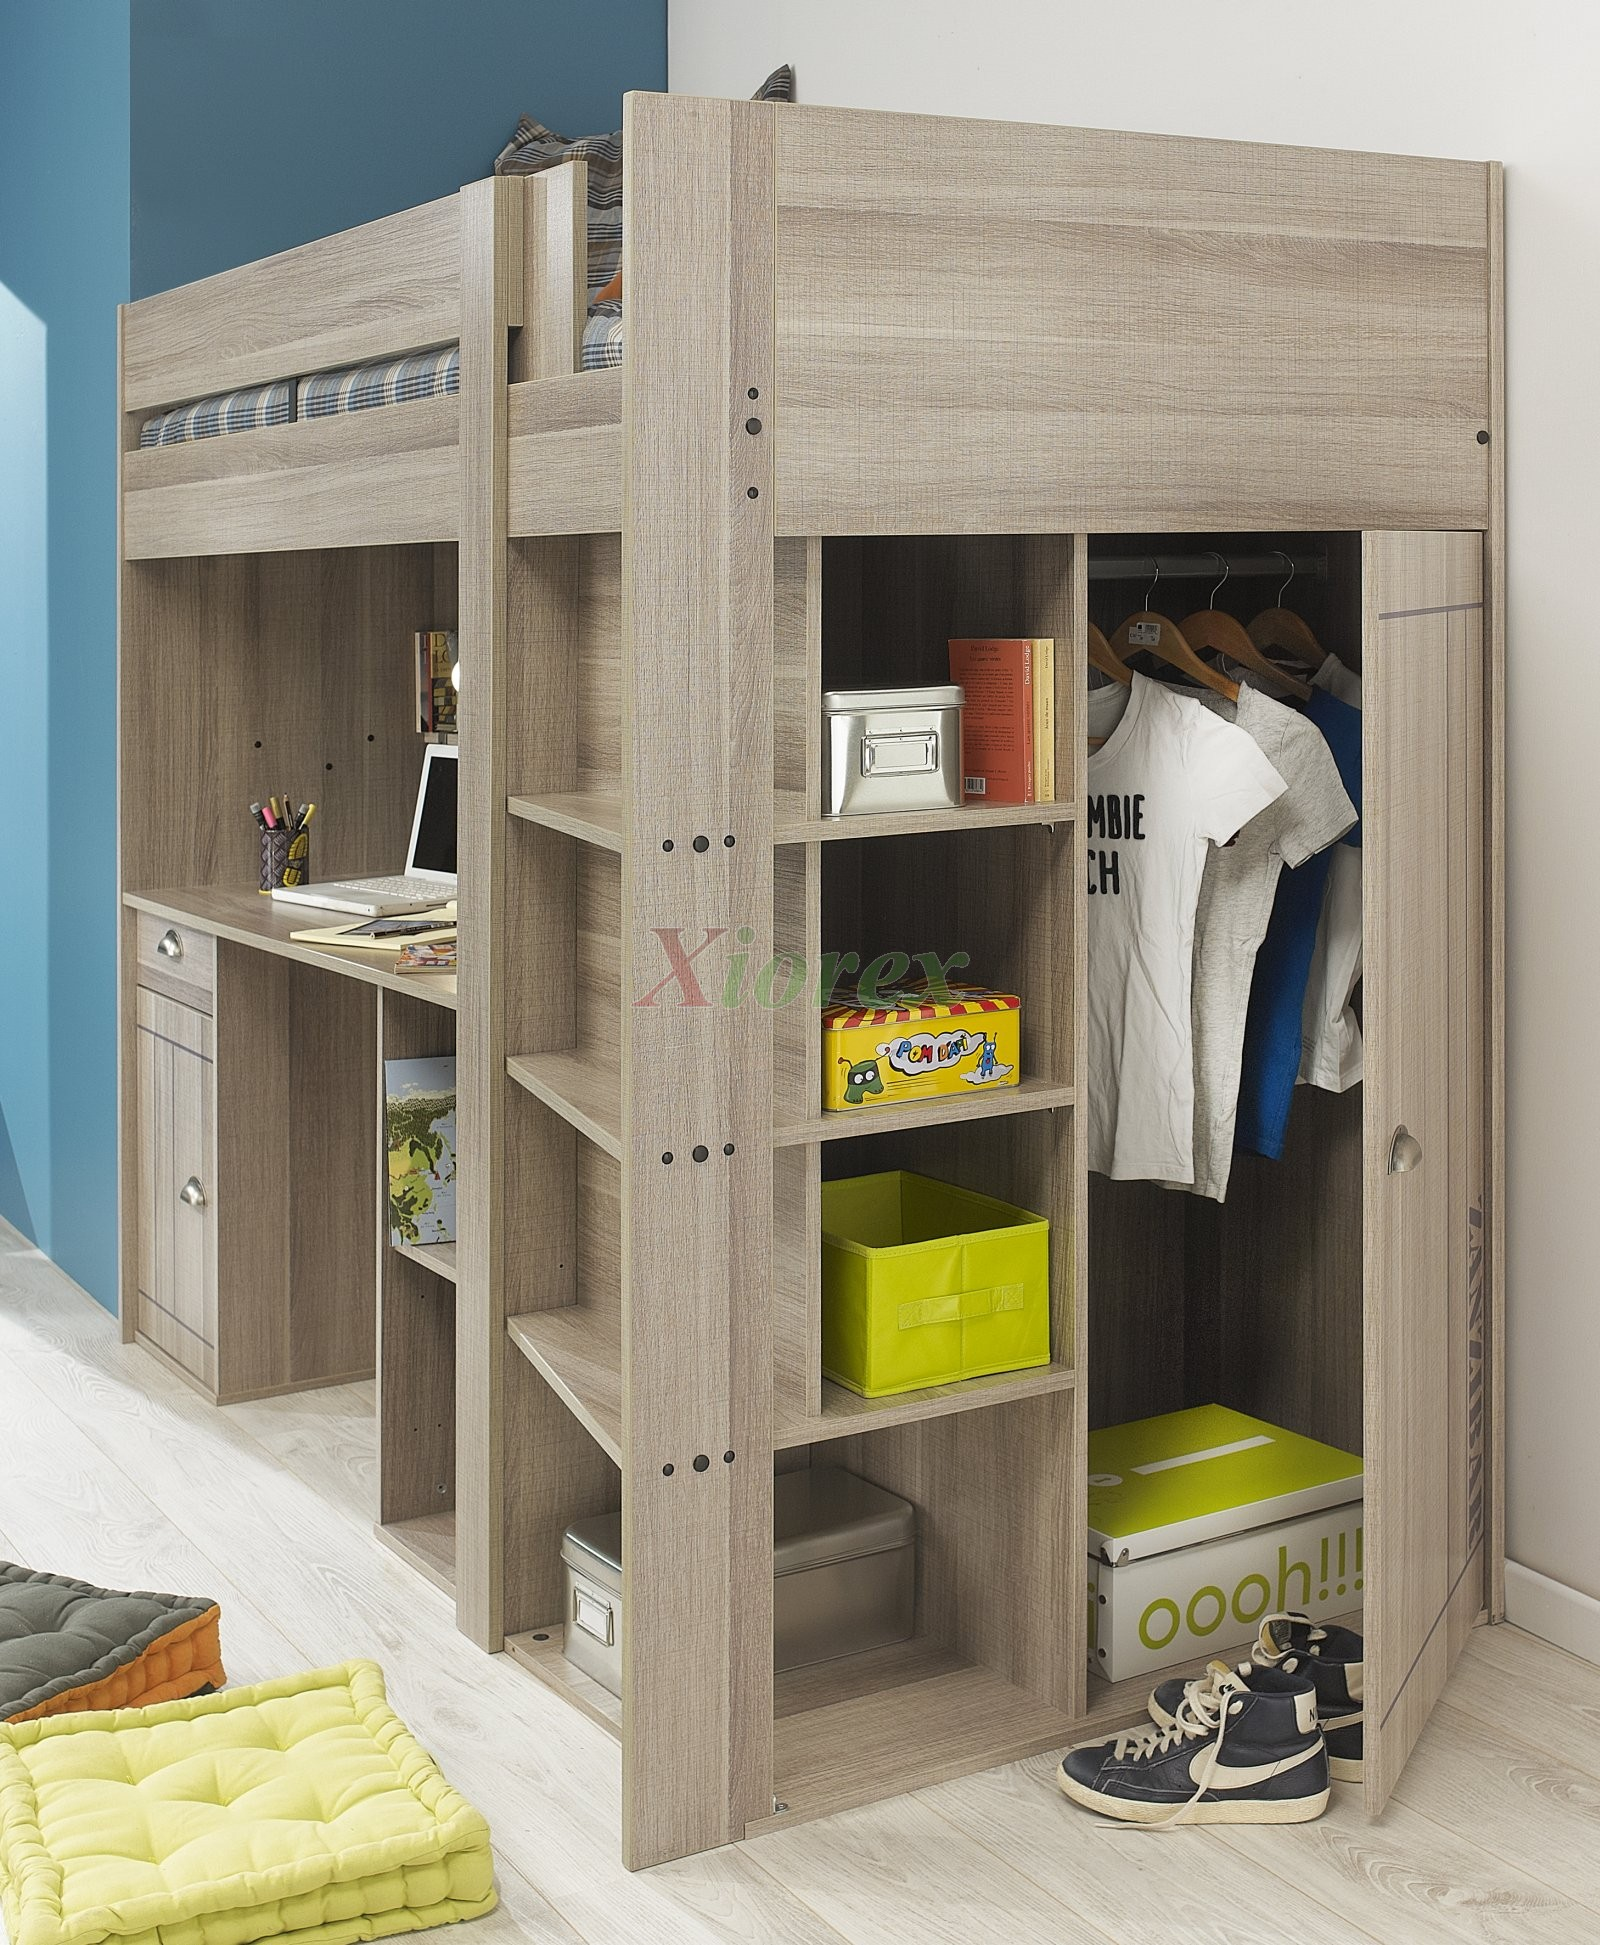 charming wood loft beds for teenagers with desk and shelves plus wardrobe on white tile floor for boy bedroom decor ideas